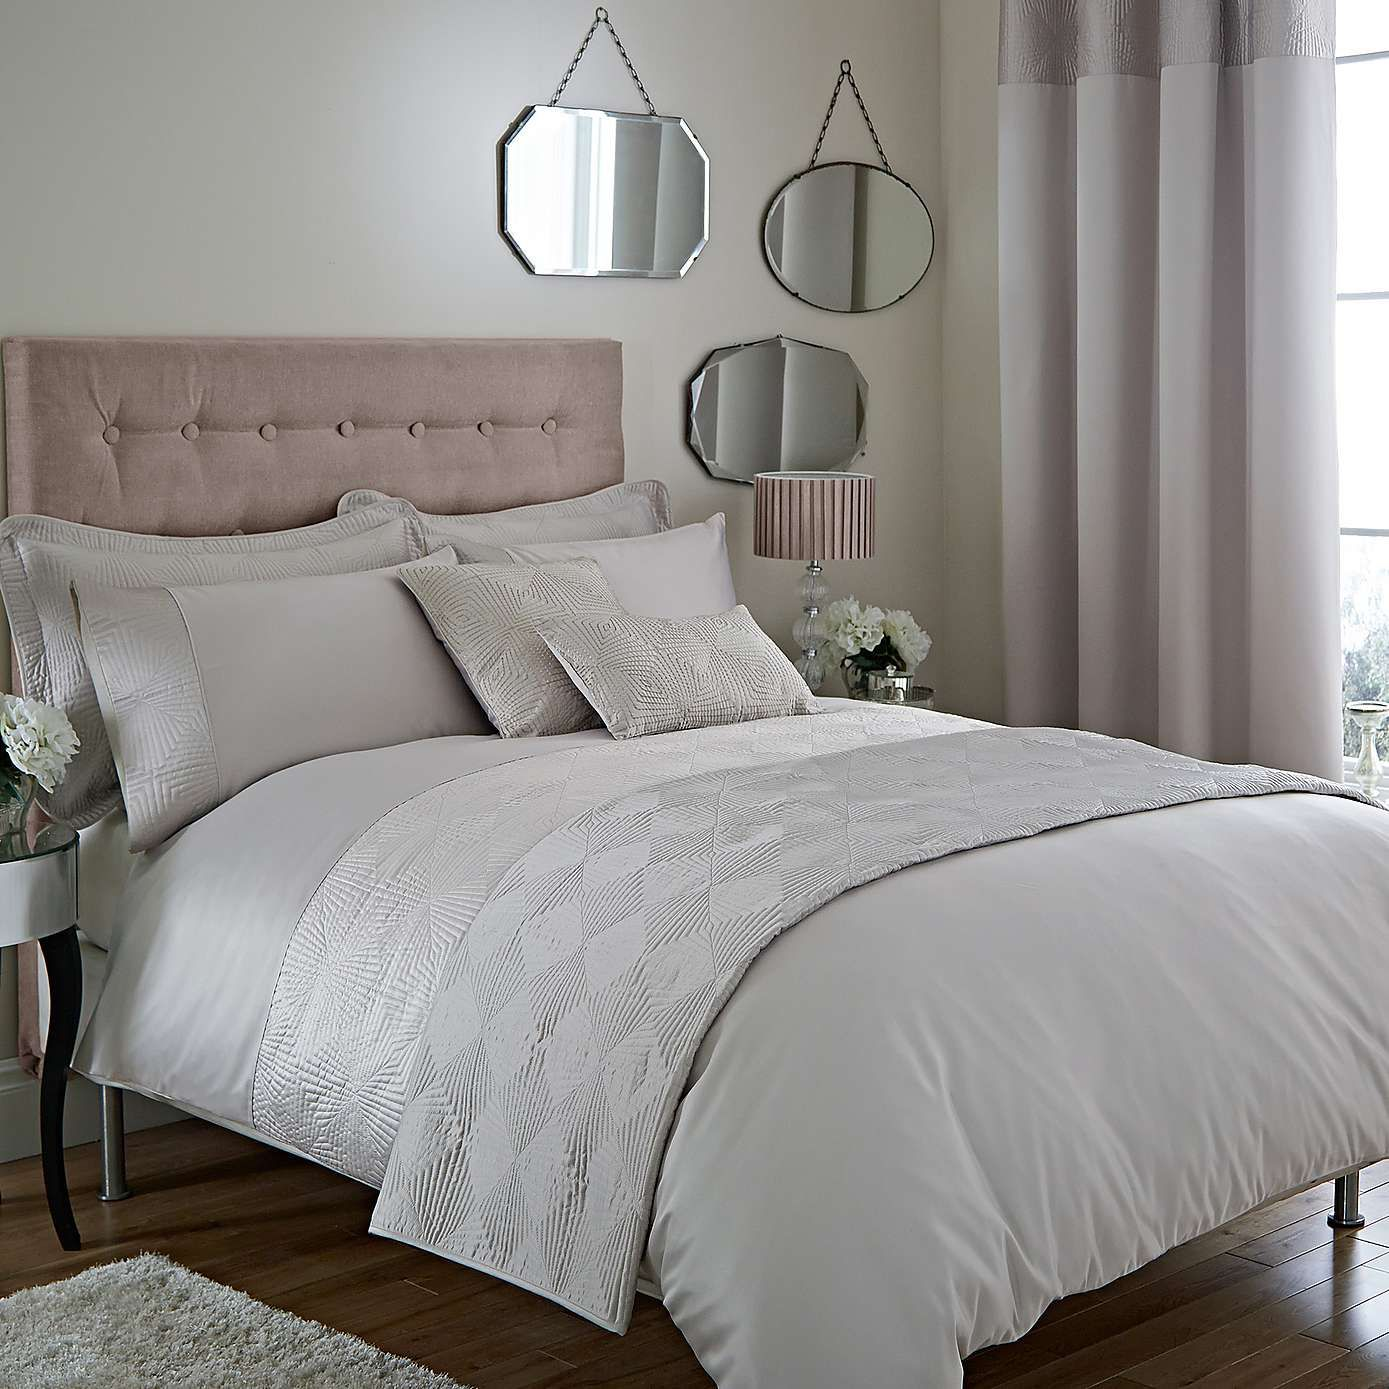 Silver Curtains For Bedroom Silver Roma Damask Bed Linen Collection Dunelm Master Bedroom